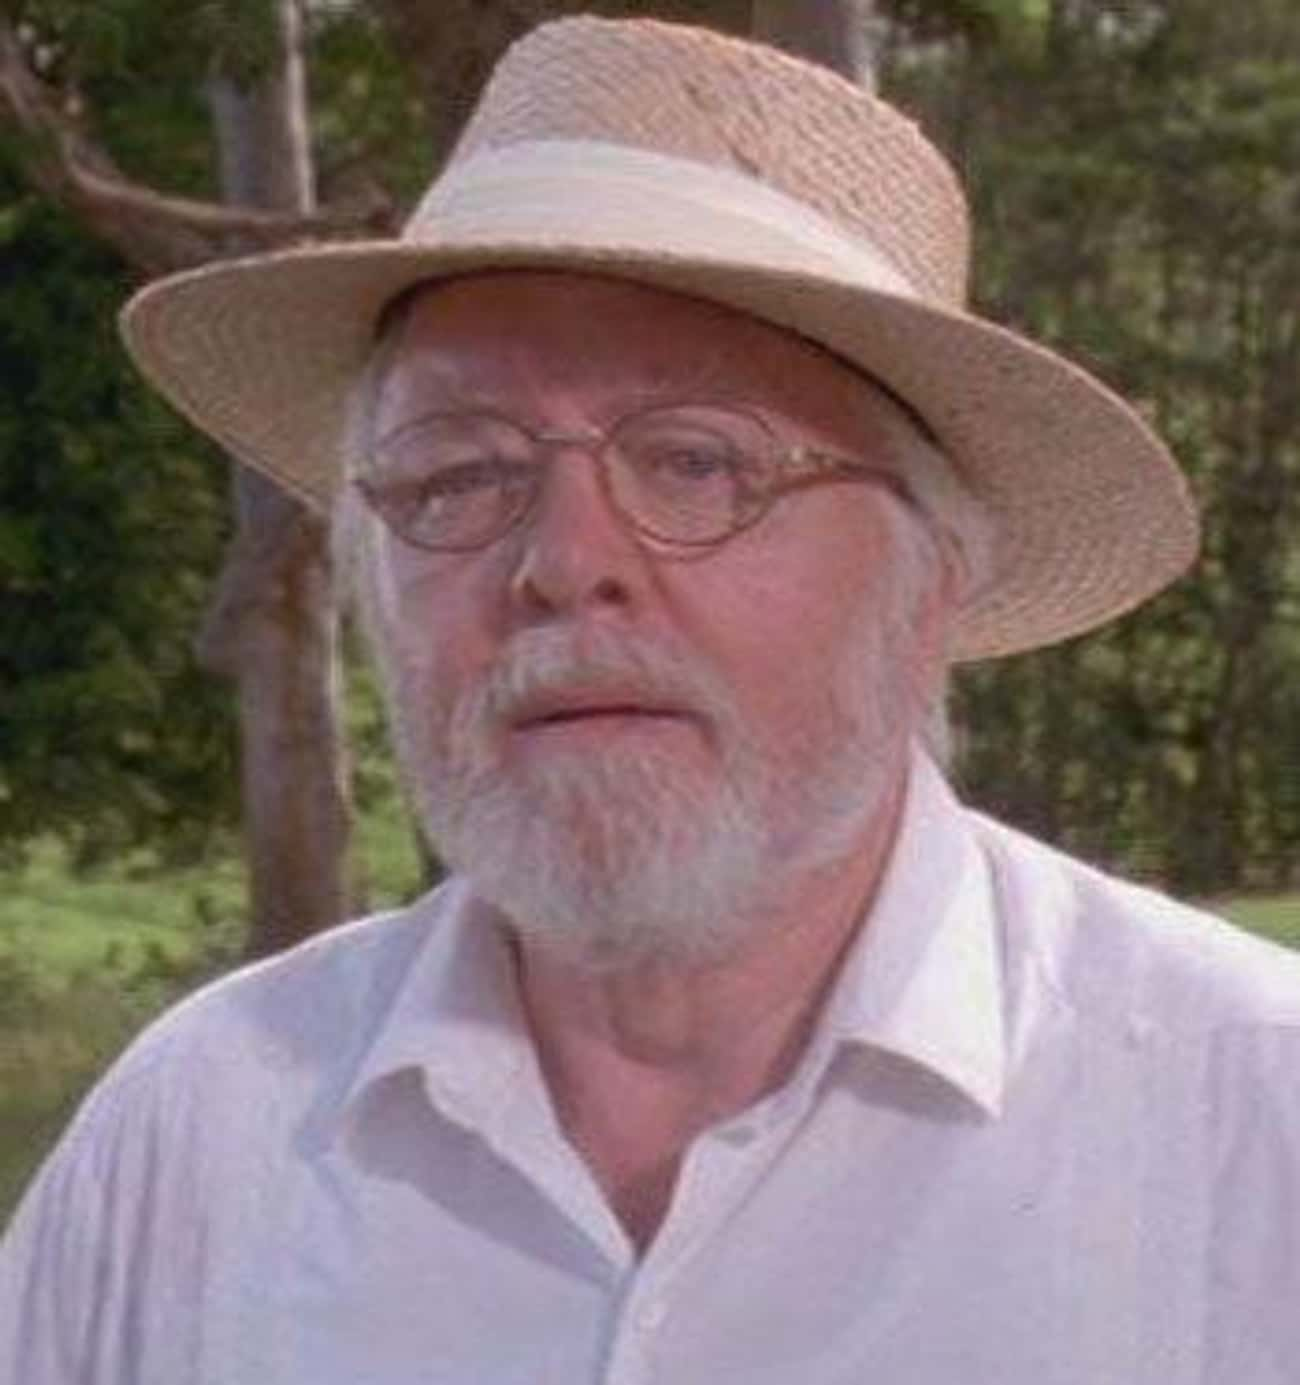 John Hammond In Jurassic Park is listed (or ranked) 3 on the list Sean Connery Nearly Played All Of Your Favorite Movie Characters